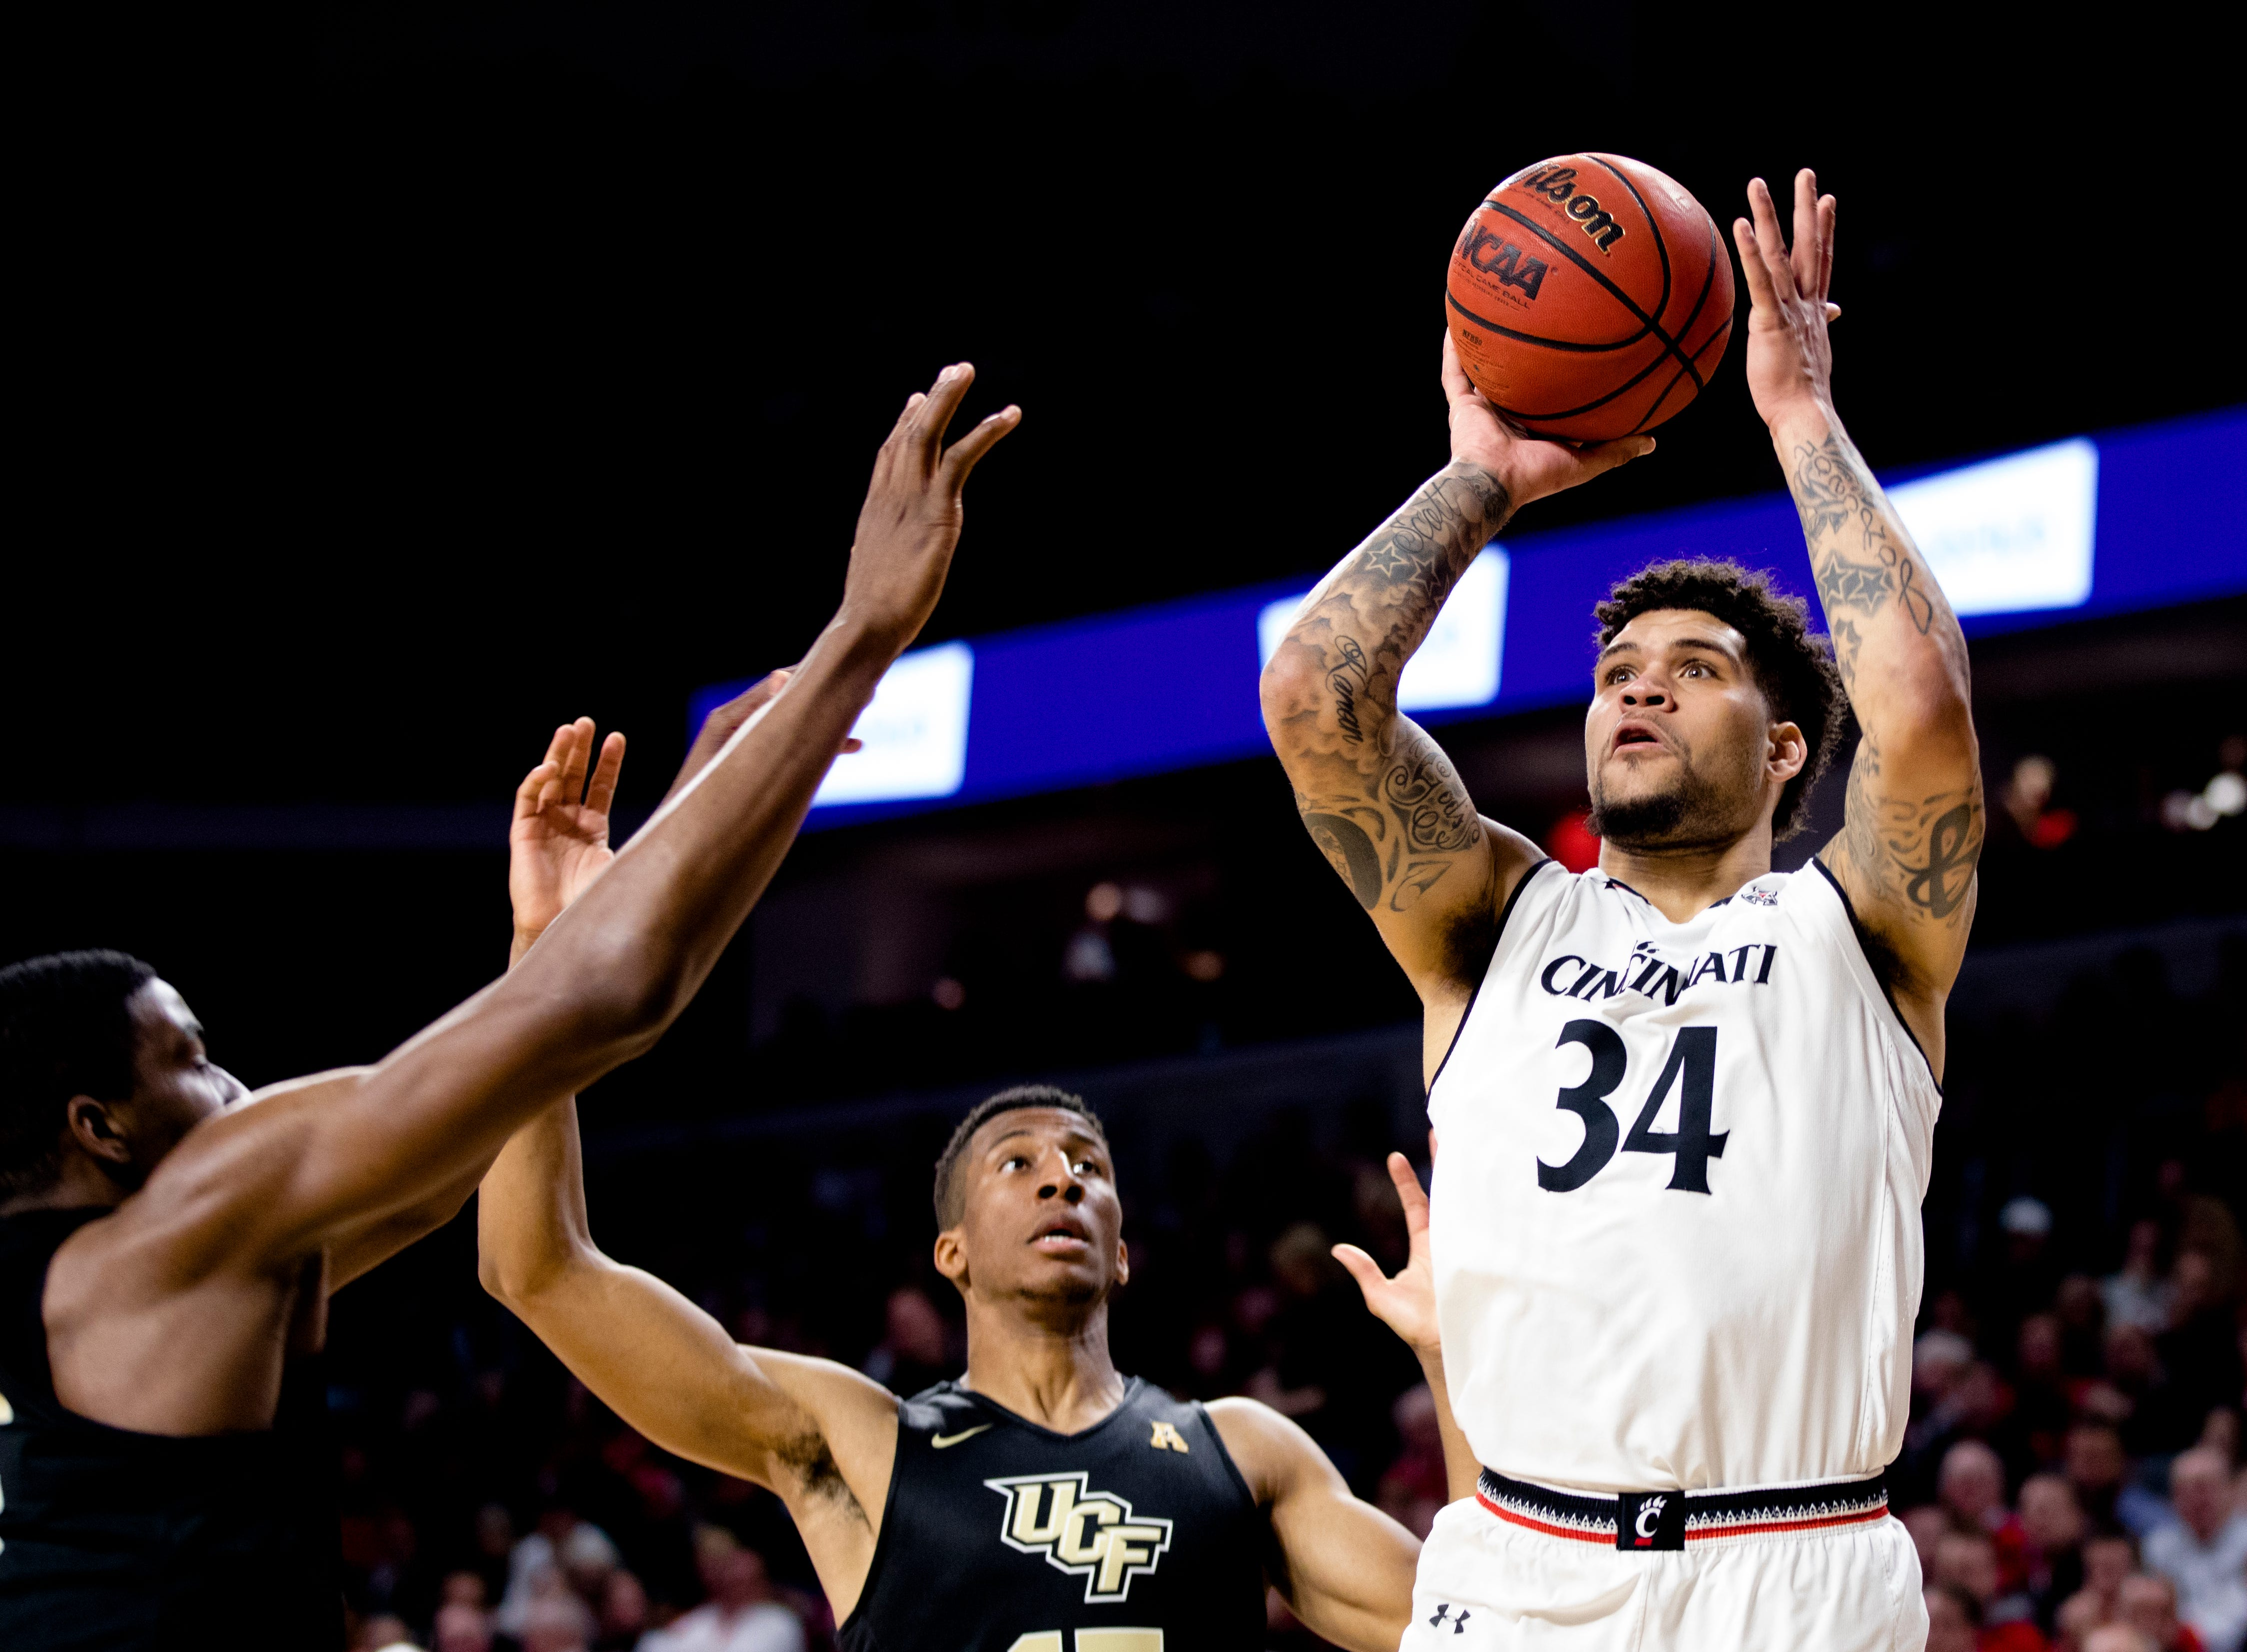 Cincinnati Bearcats guard Jarron Cumberland (34) shoots as UCF Knights forward Collin Smith (35) guards him in the first half of the NCAA men's basketball game between Cincinnati Bearcats and UCF Knights on Thursday, Feb. 21, 2019, at Fifth Third Arena in Cincinnati.